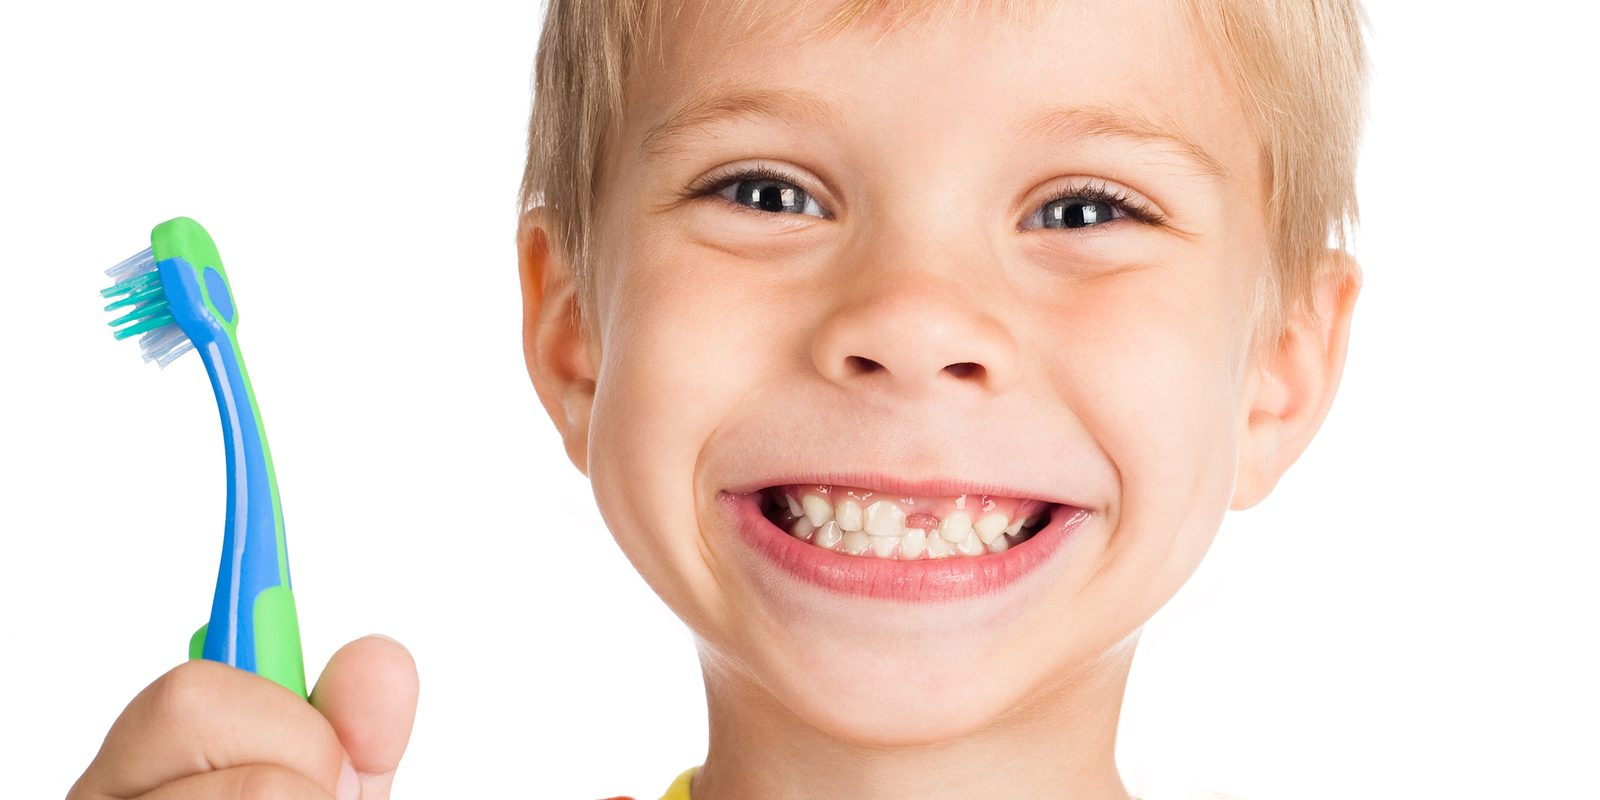 When to Start Tooth Teeth For Children